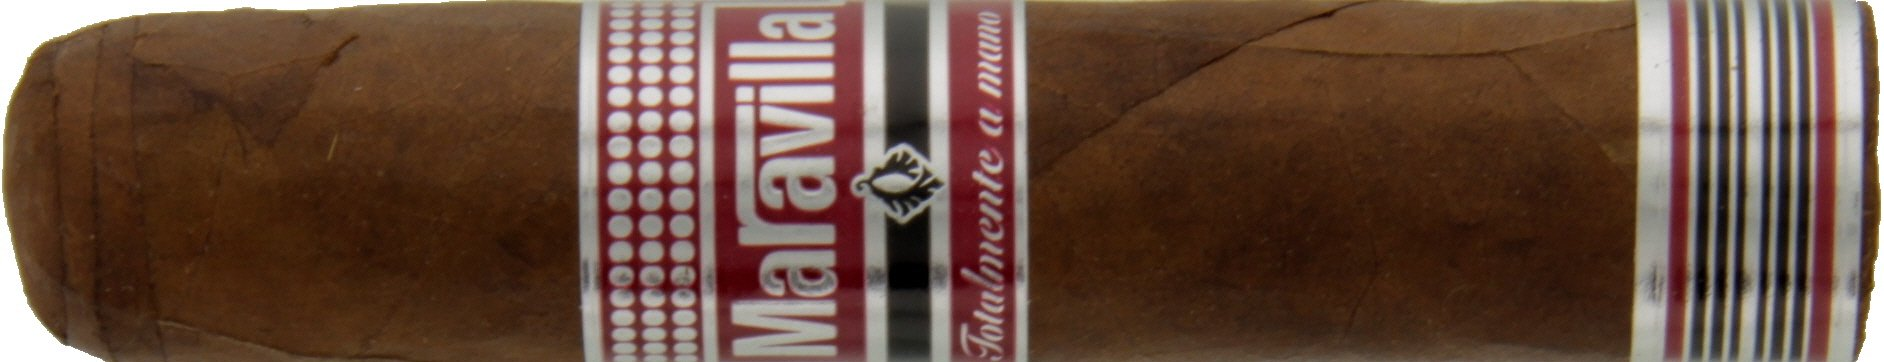 Maravilla Reserva Short Churchill